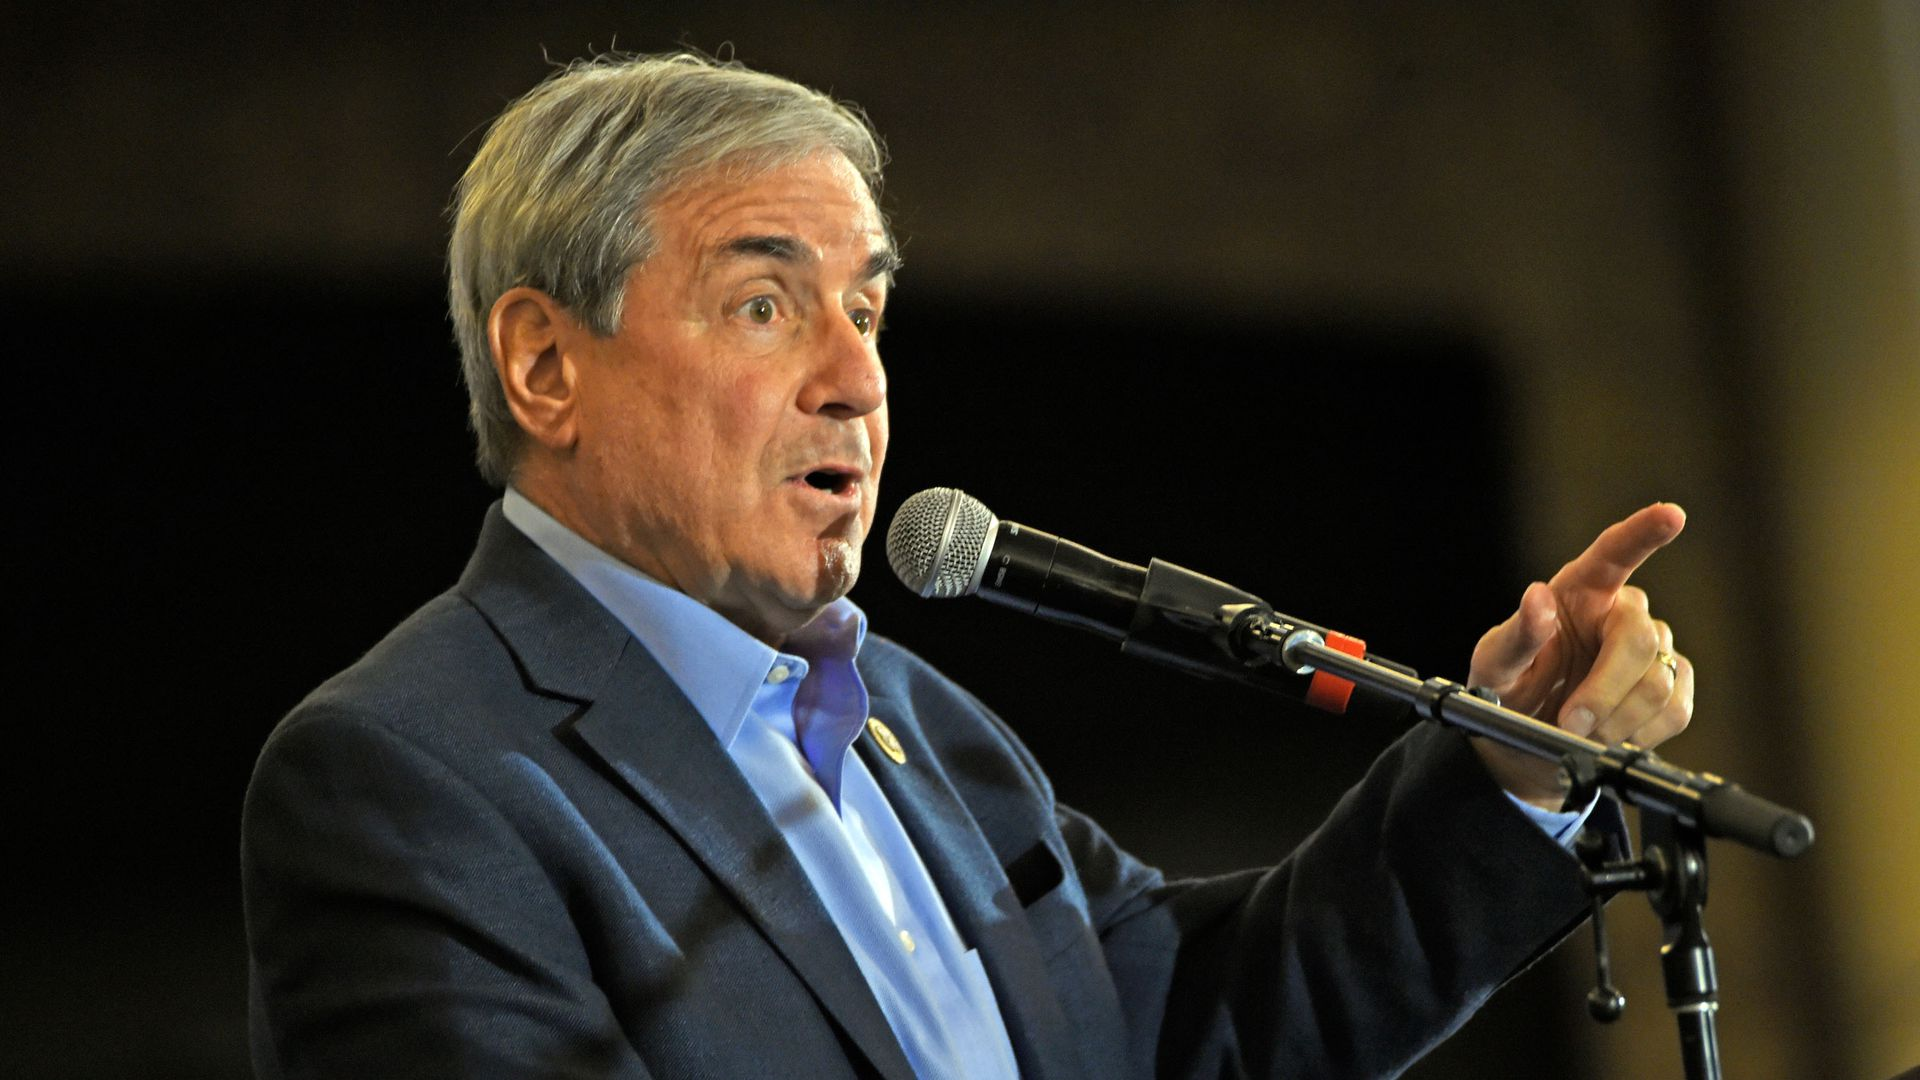 Rep. John Yarmuth speaks during the Protecting Working Families Tour at The Galt House Hotel on December 1, 2017 in Louisville, Kentucky.